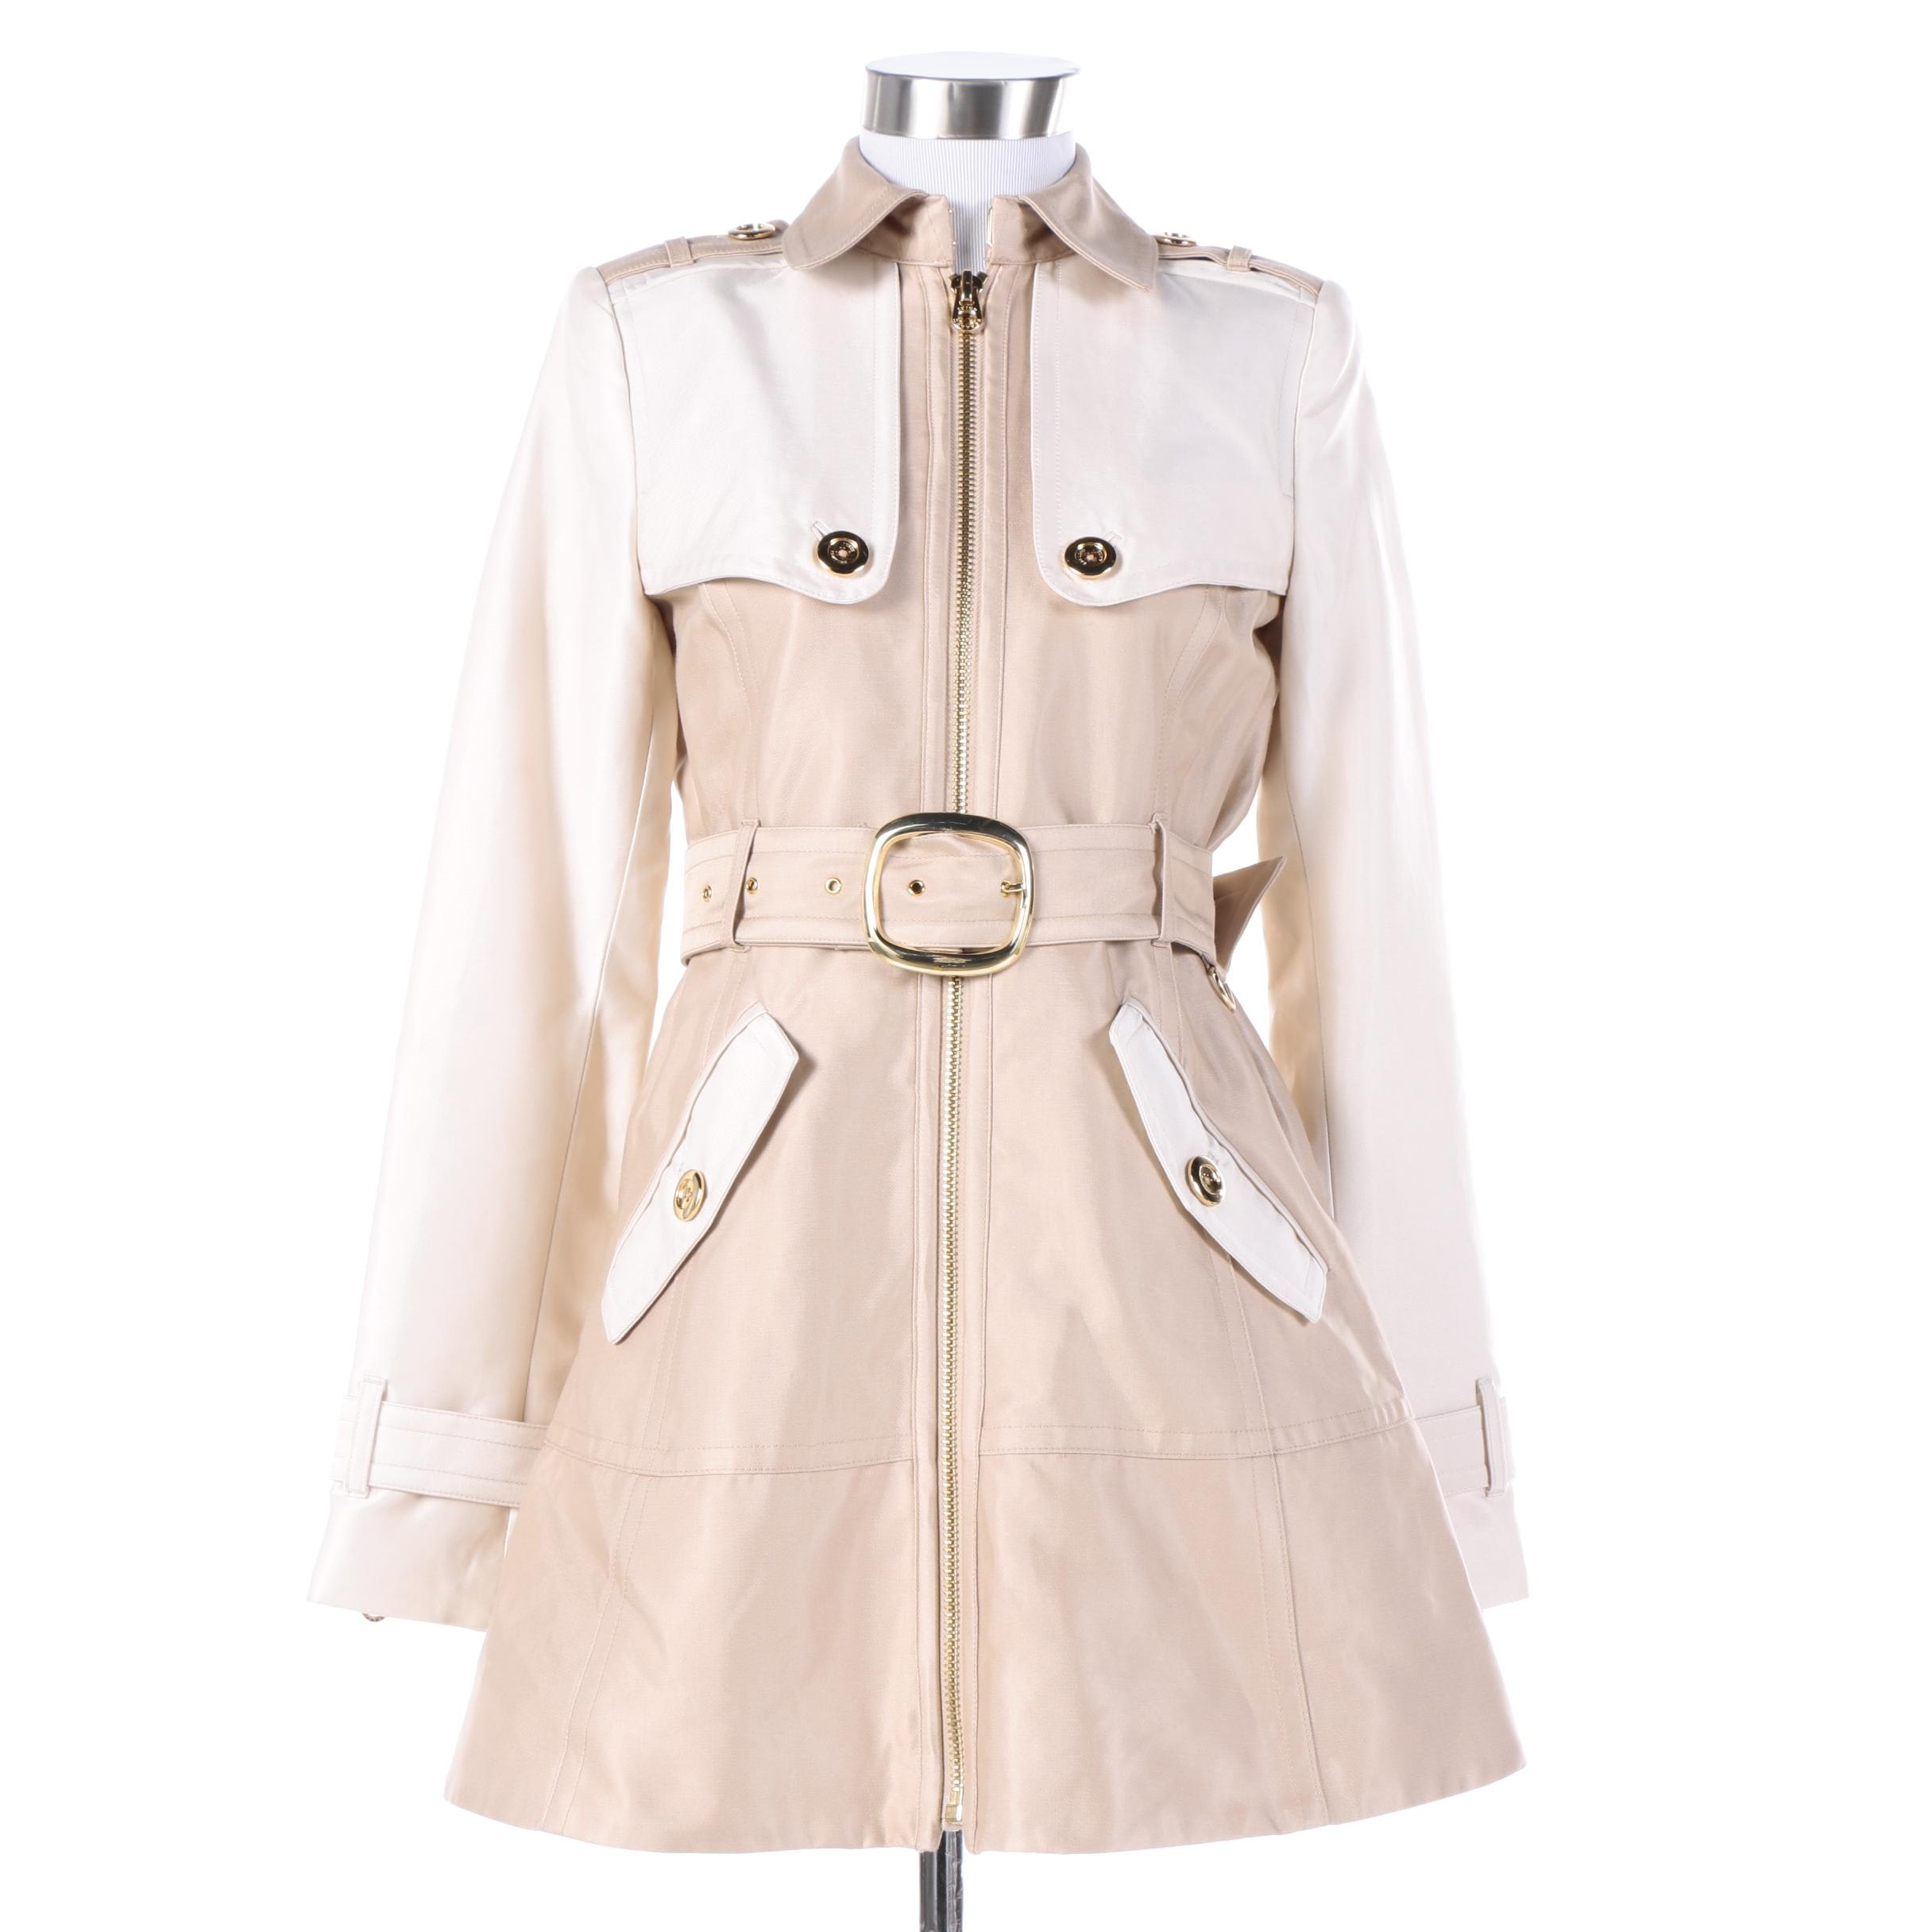 Women's Juicy Couture Beige and Off-White Cotton Blend Jacket